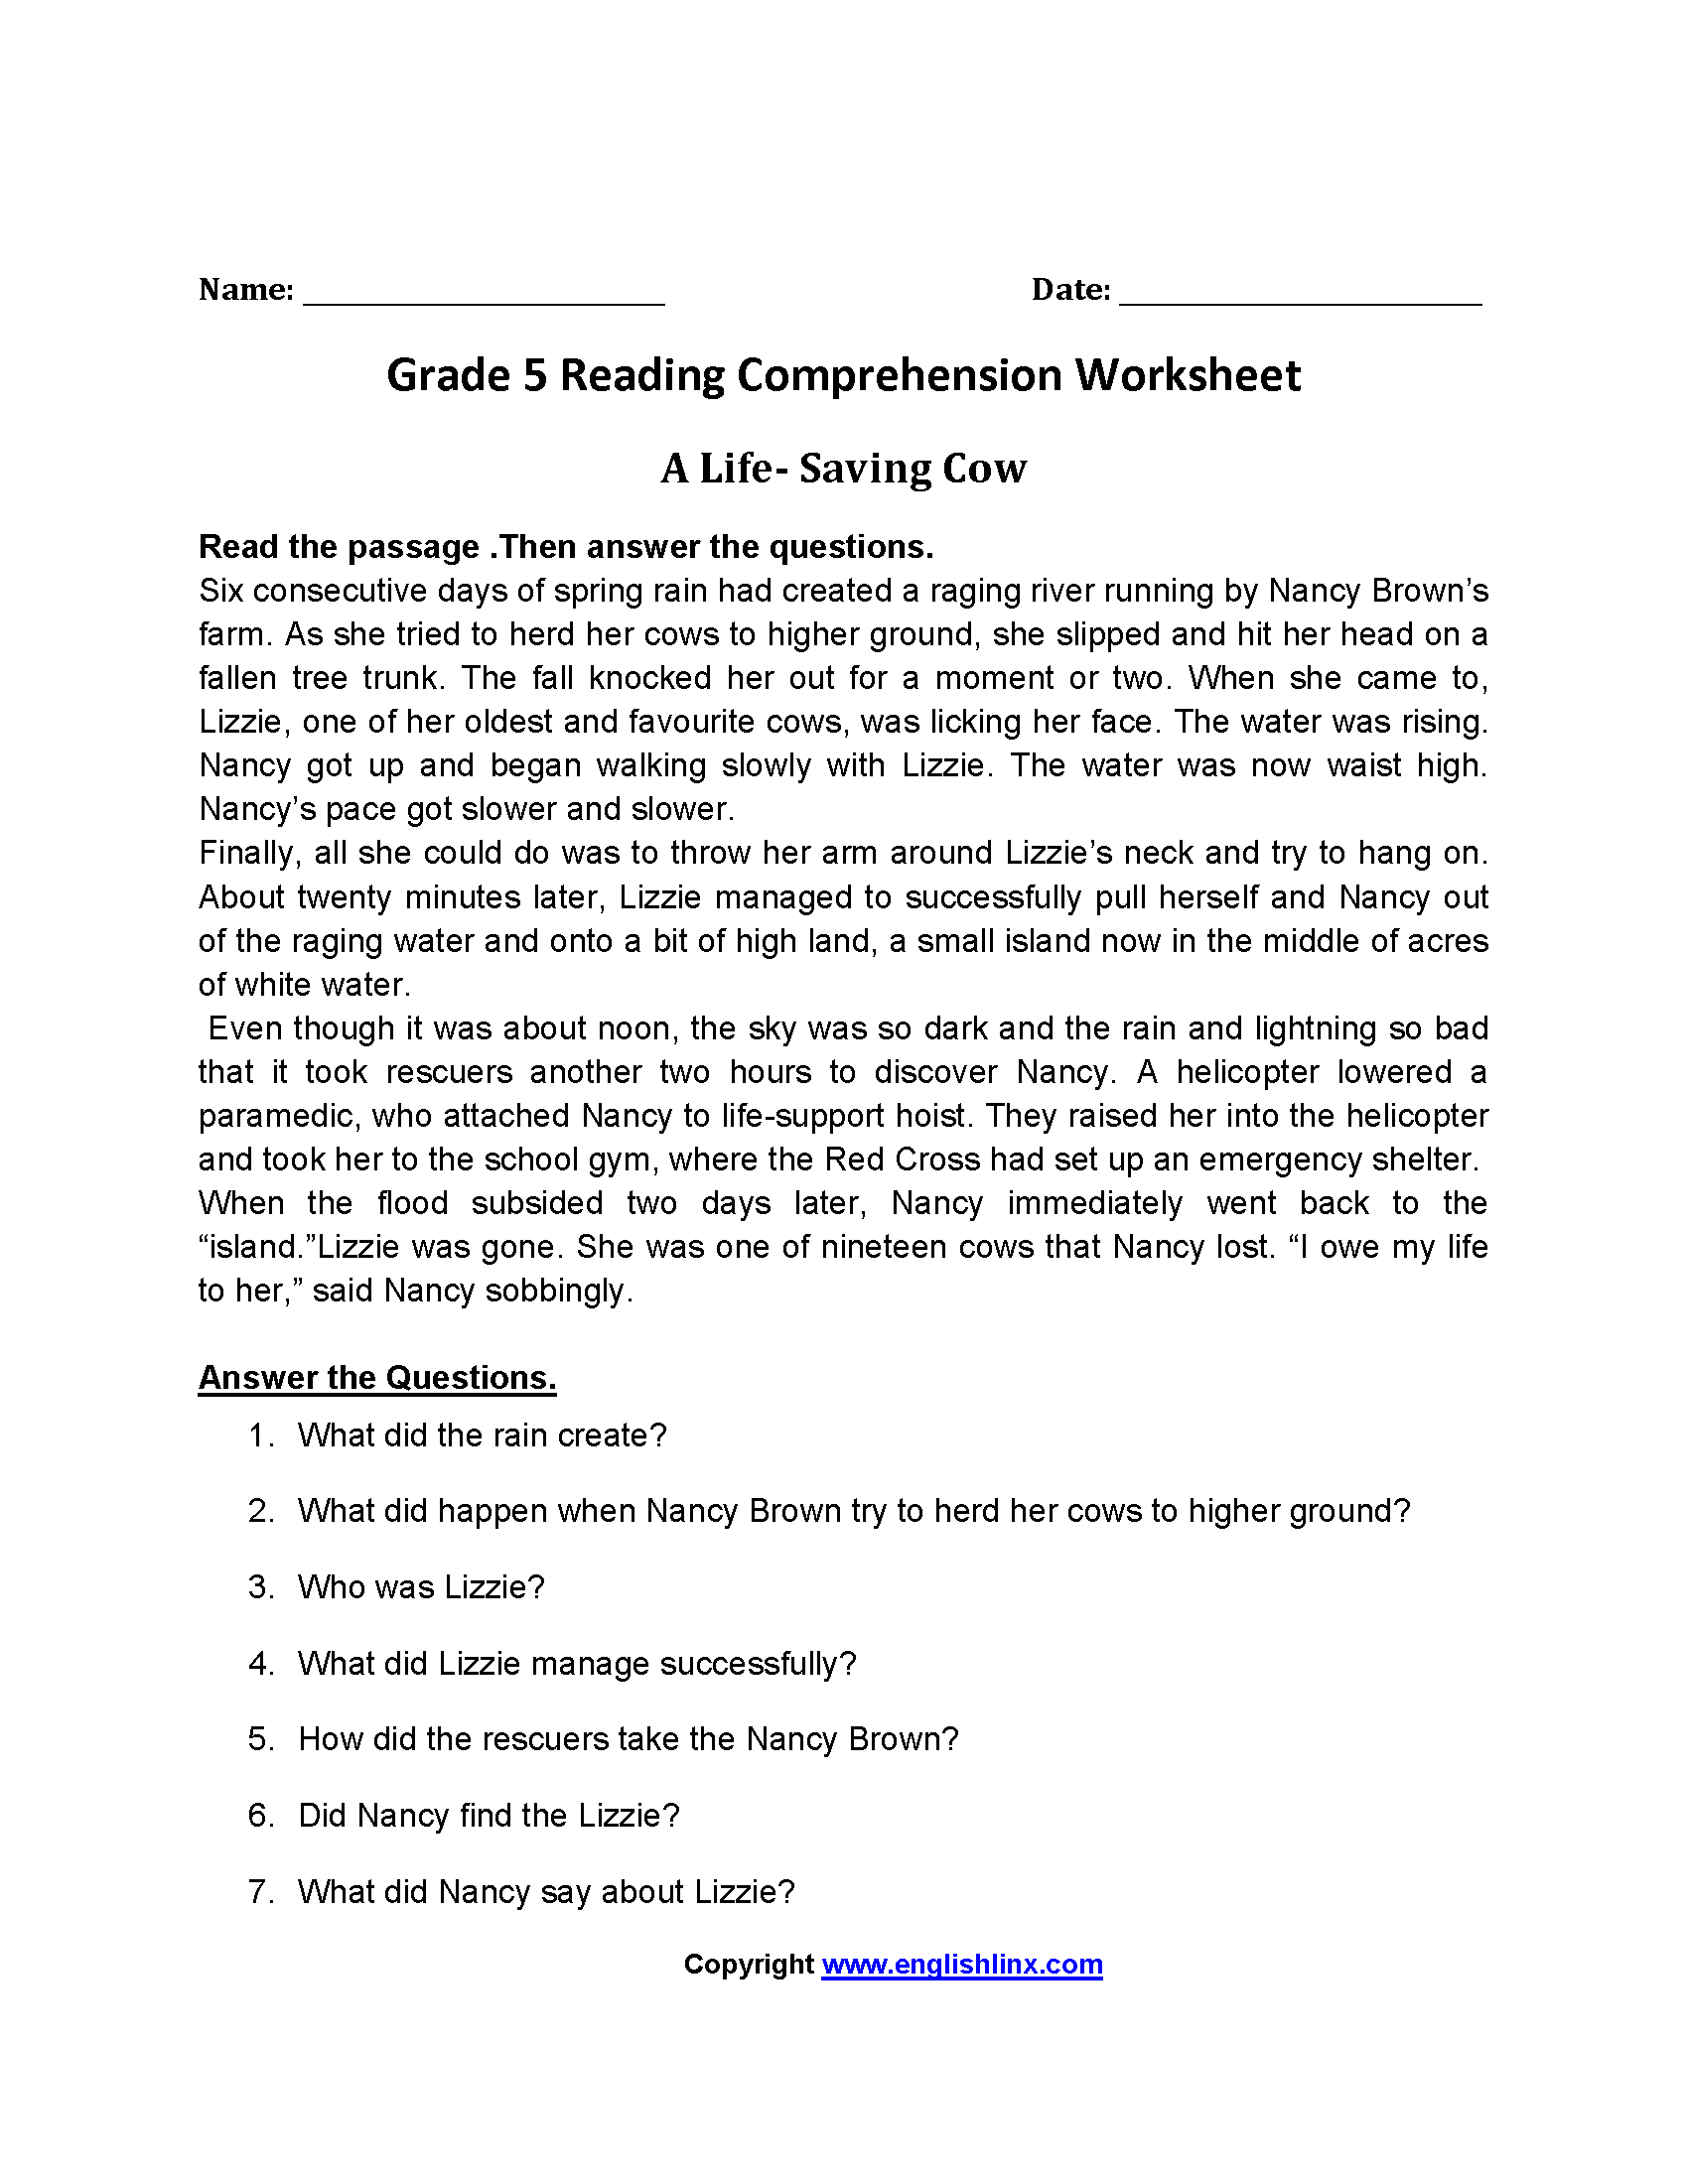 19 Best Reading Worksheets Images On Best Worksheets